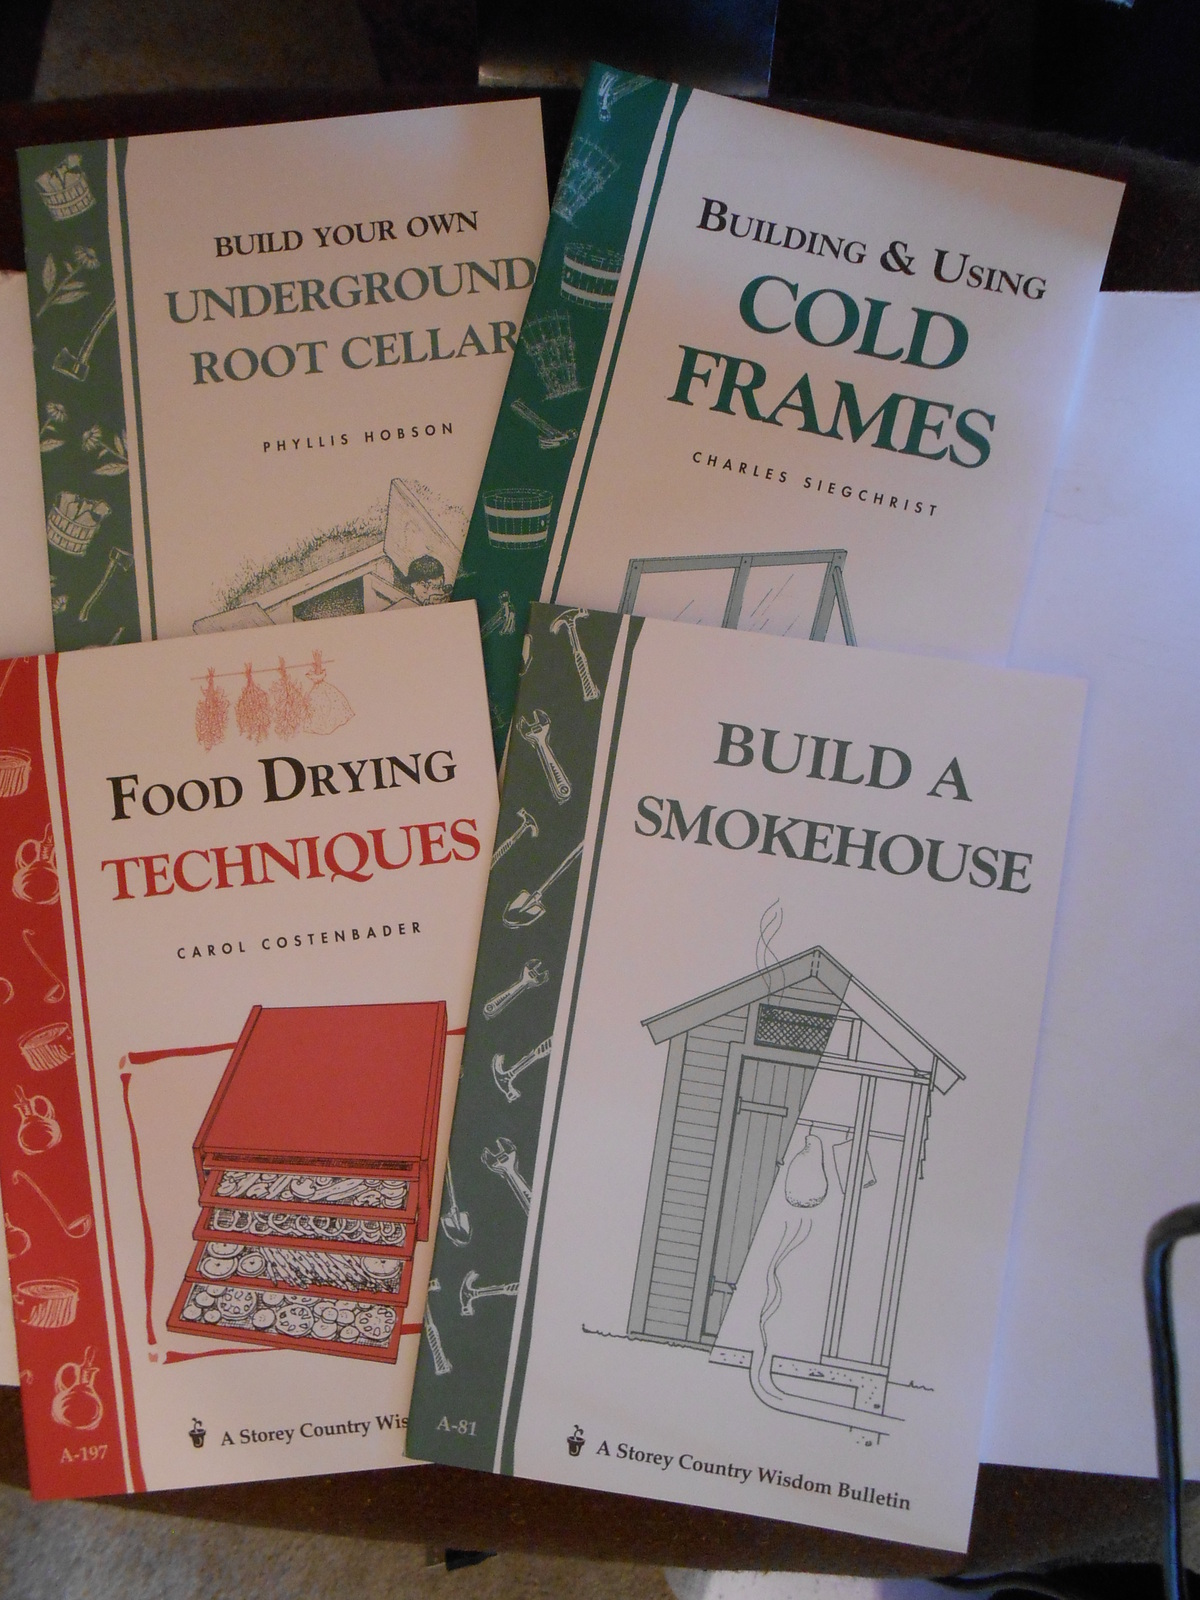 Primary image for 4 DIY Country Wisdom Bulletins: Smokehouse, Food Drying, Root Cellar, Cold Frame